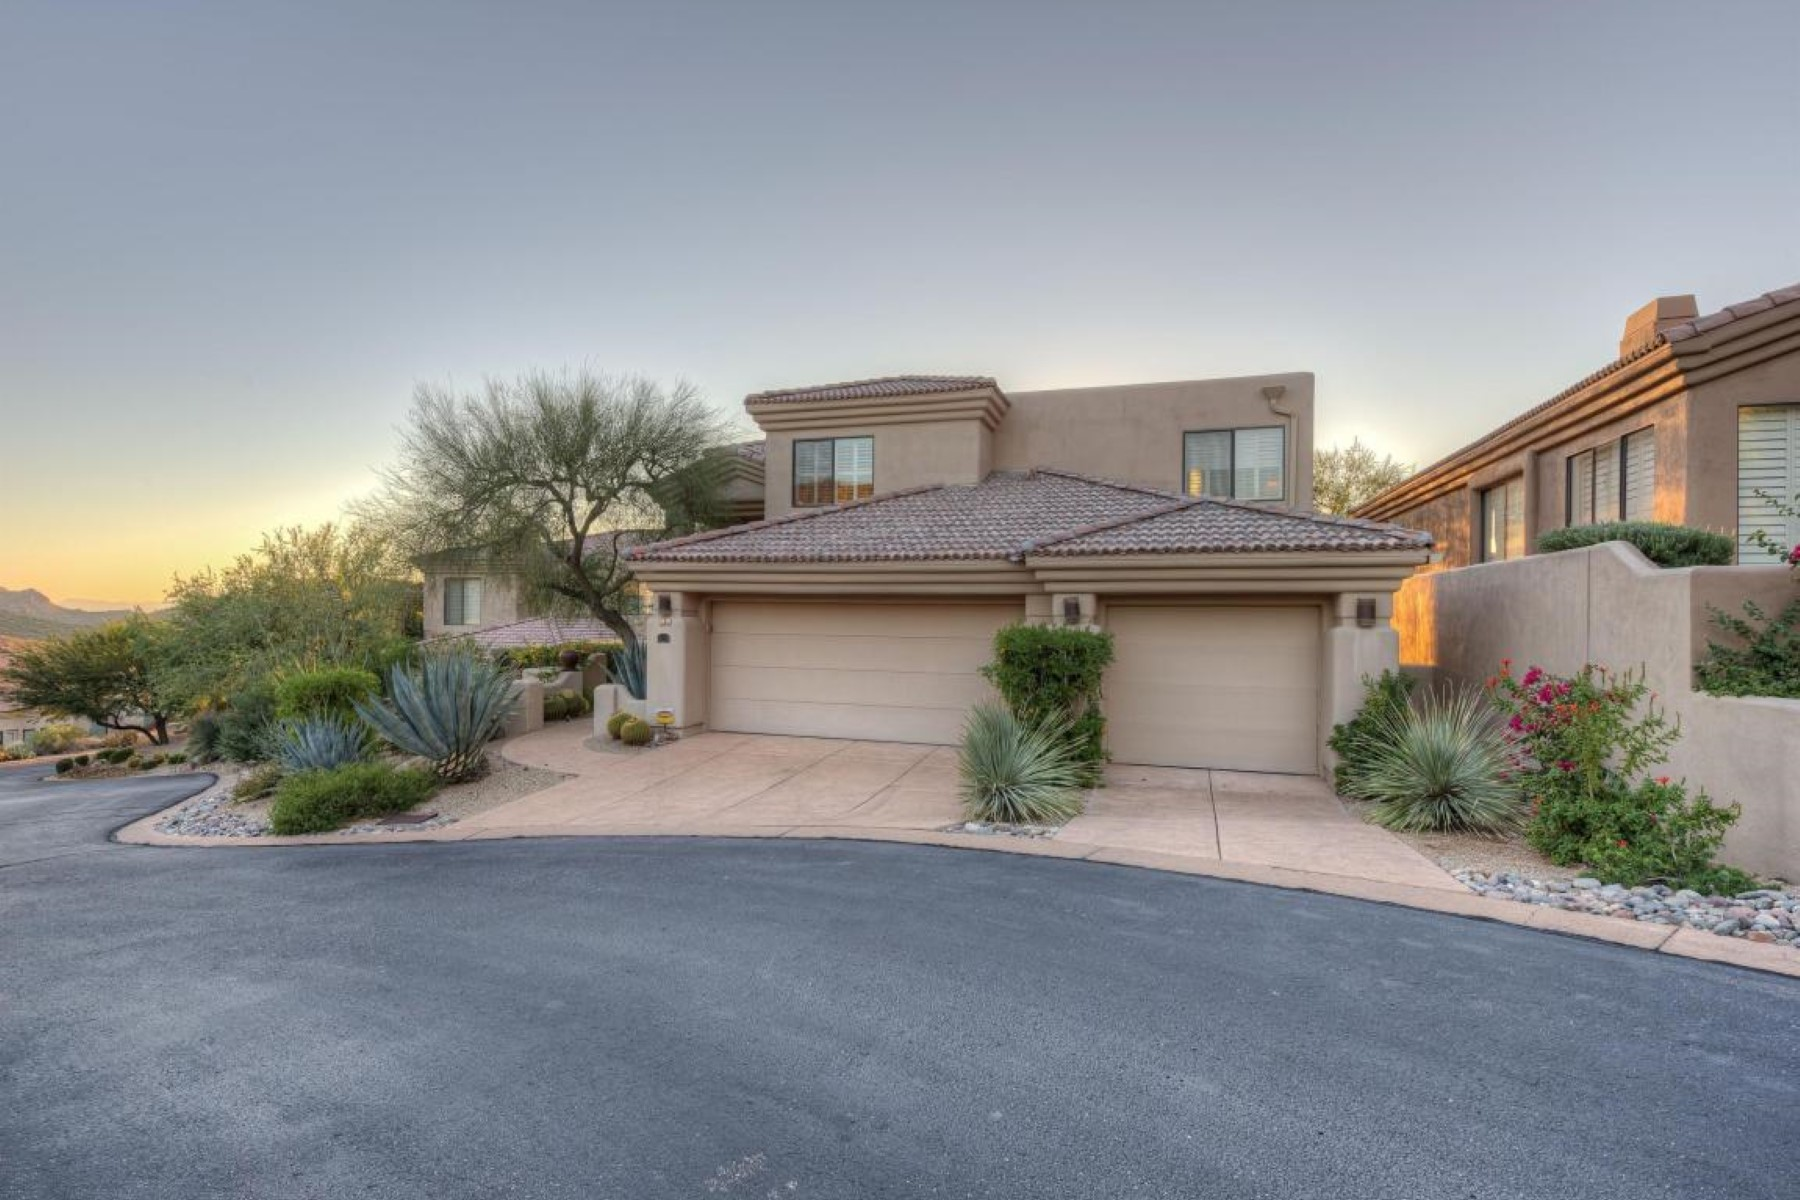 Property For Sale at Troon Village gated community of Whispering Ridge in NE Scottsdale